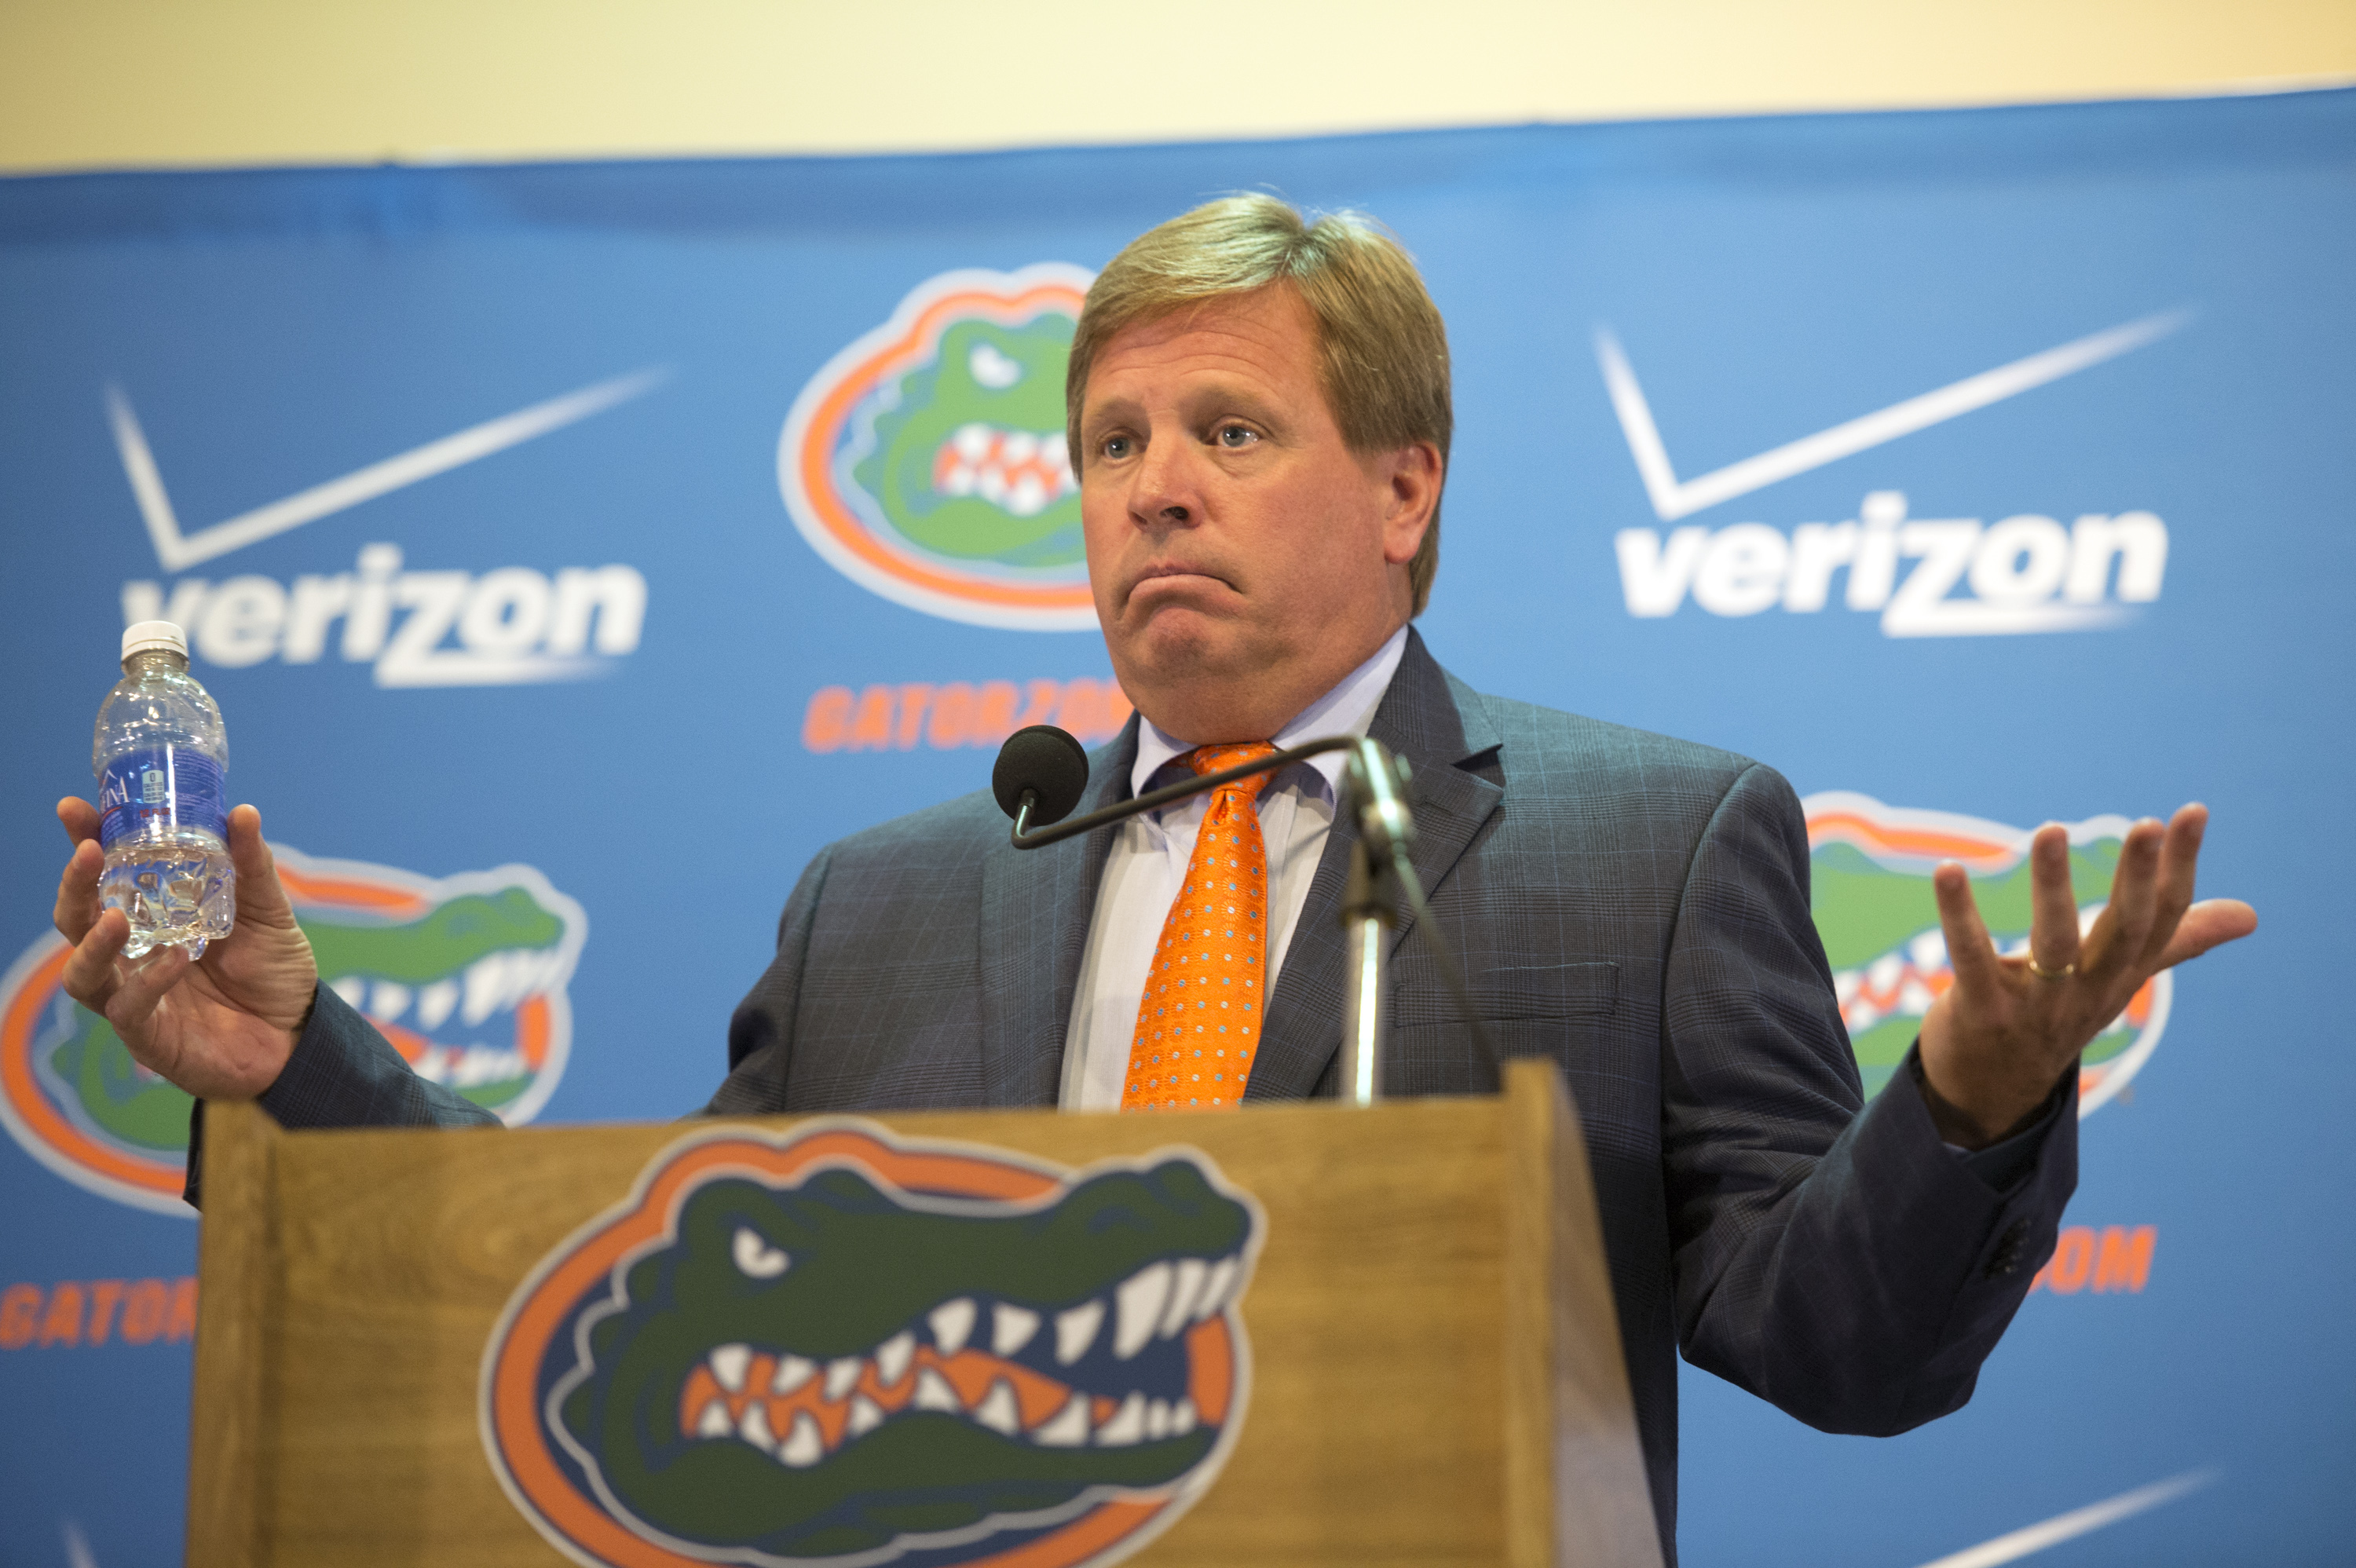 Florida NCAA college football coach Jim McElwain speaks to the media during the teams media day in Gainesville, Fla., Wednesday, Aug. 5, 2015. (AP Photo/Phil Sandlin)